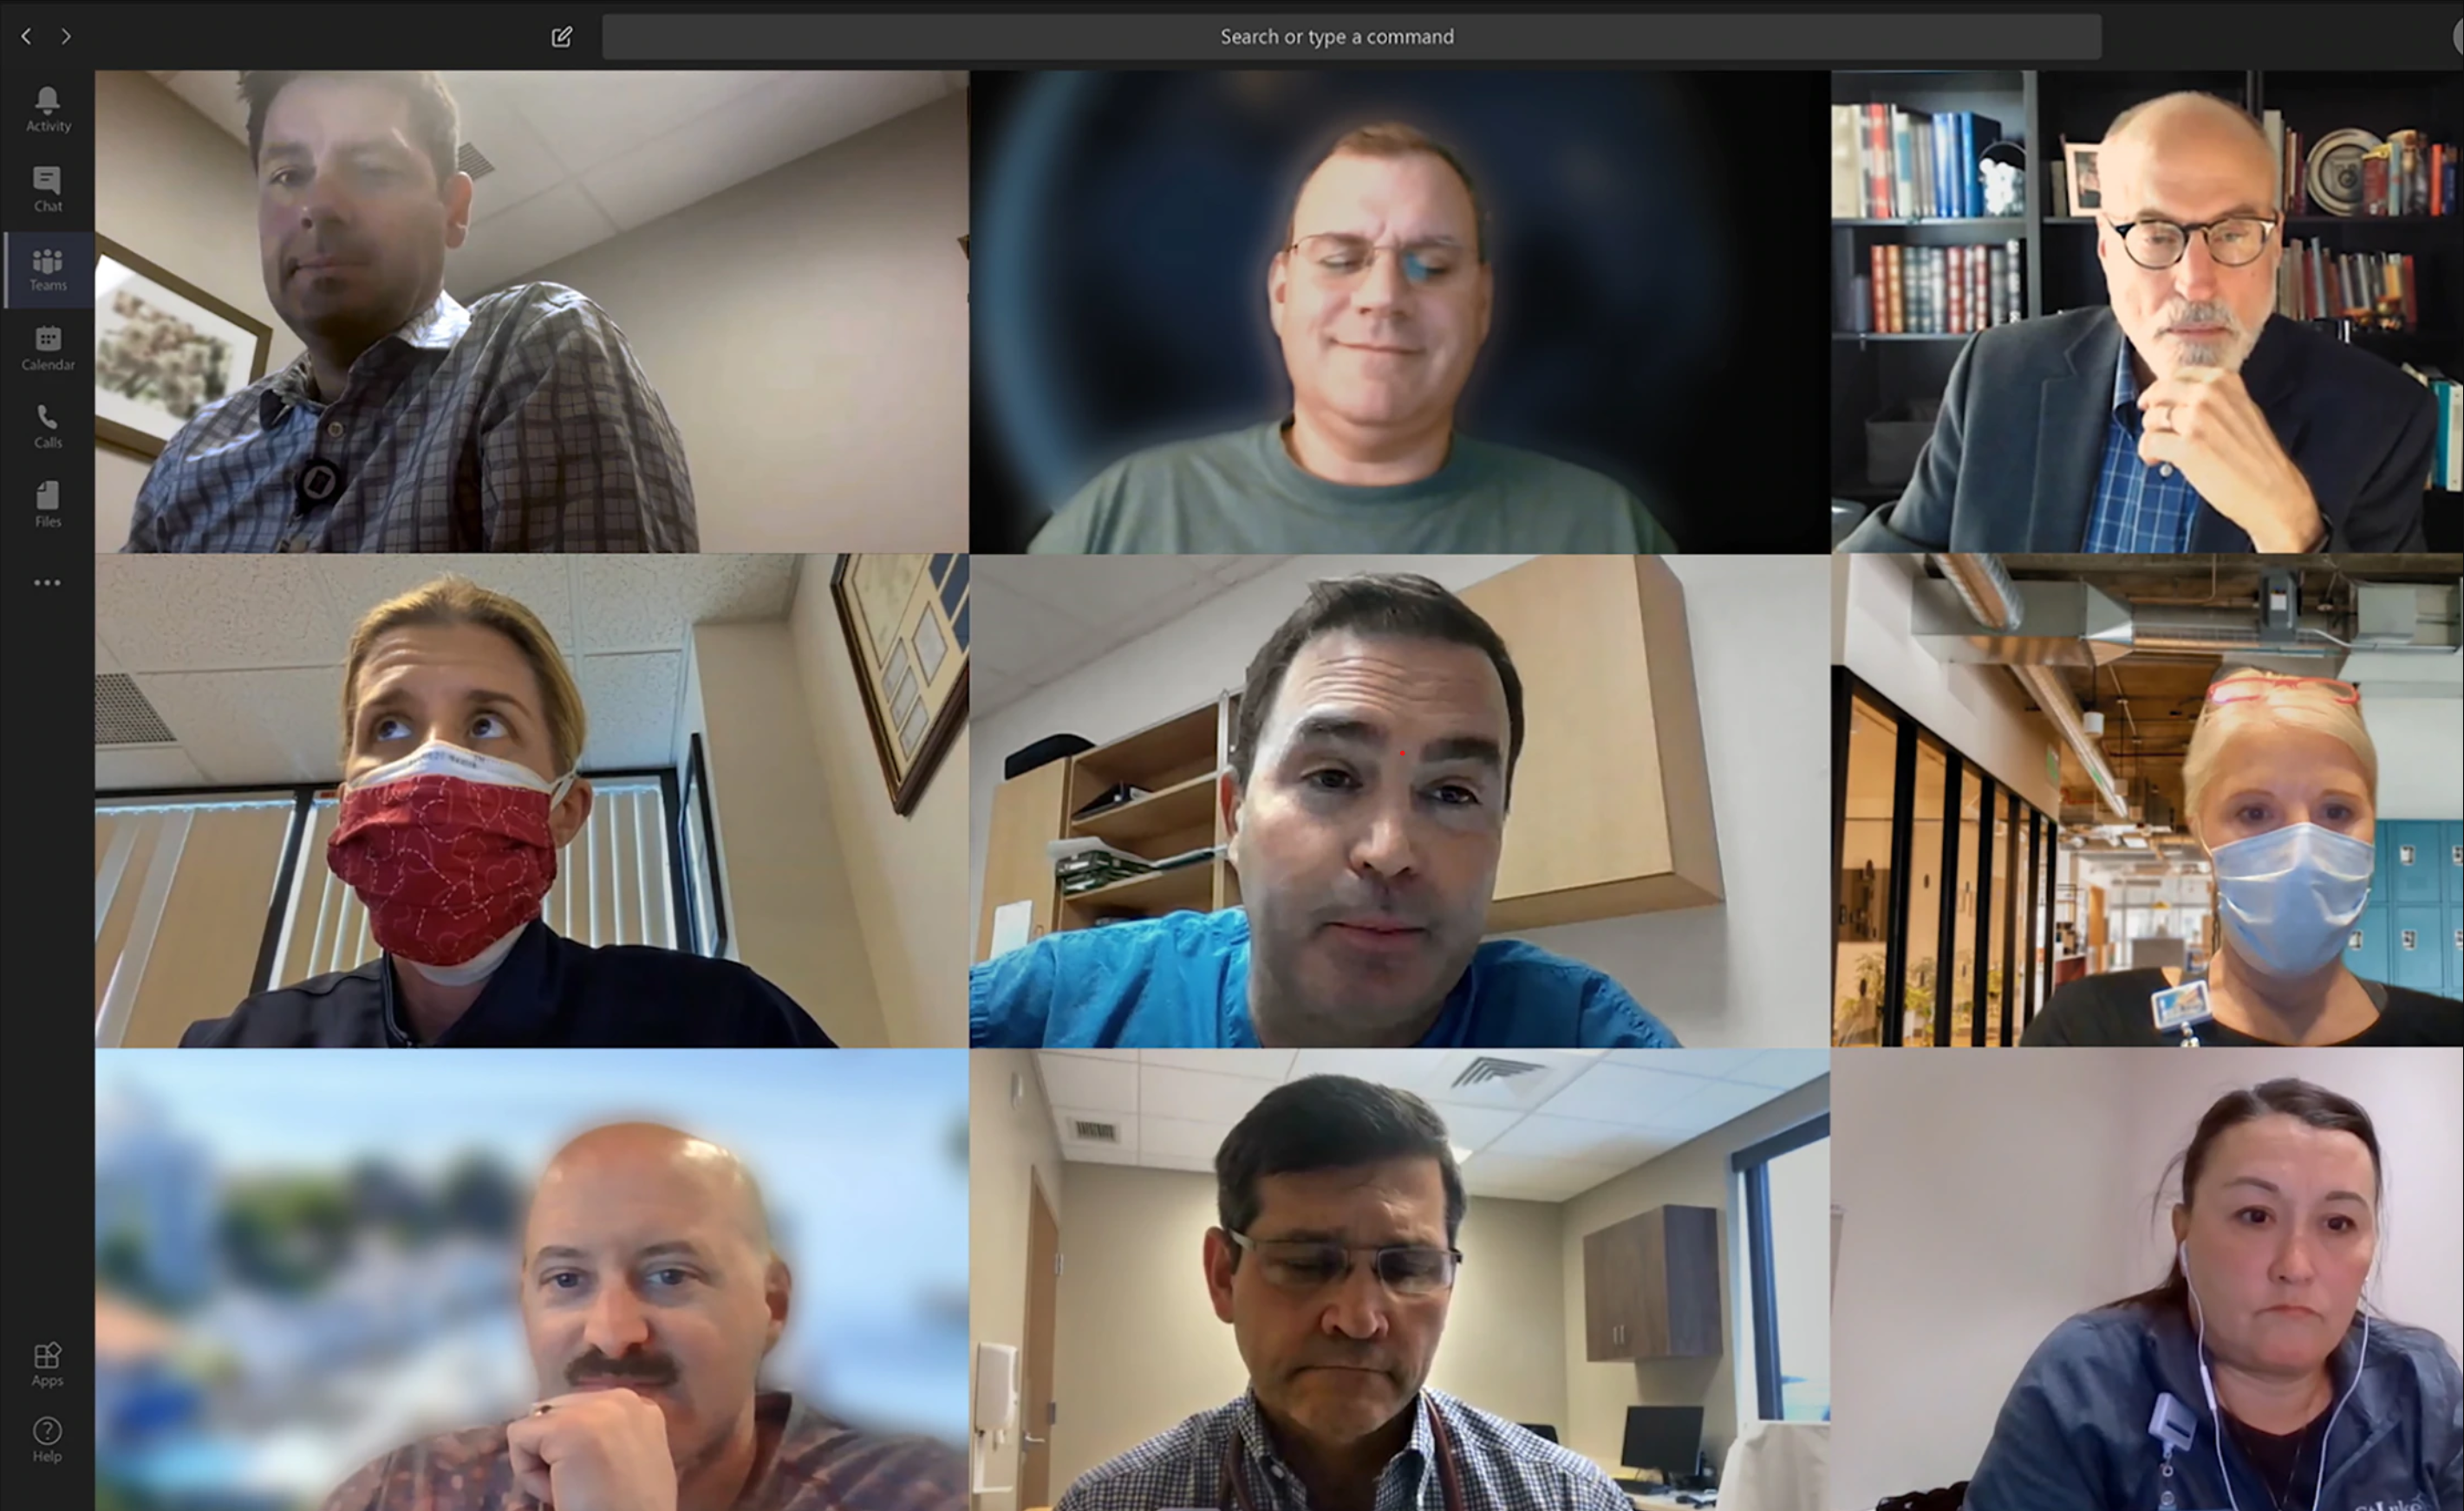 A 3x3 matrix of people using a webcam on Teams